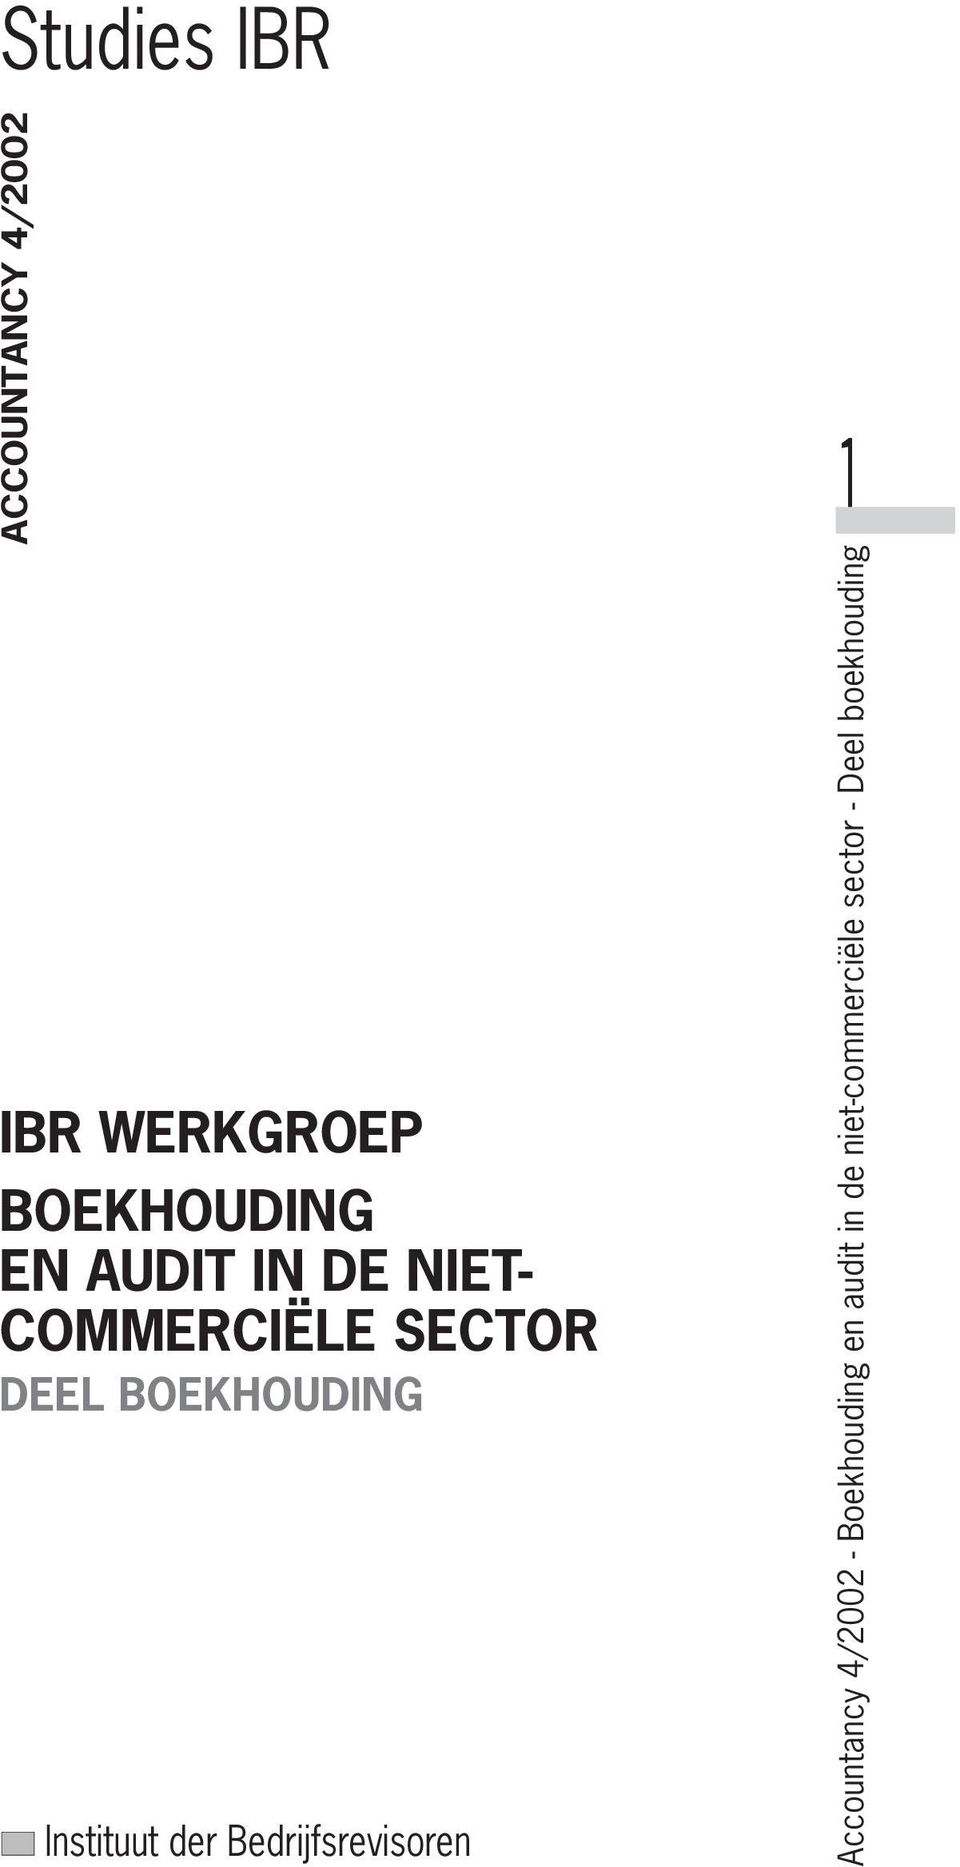 ACCOUNTANCY 4/2002 IBR WERKGROEP BOEKHOUDING EN AUDIT IN DE